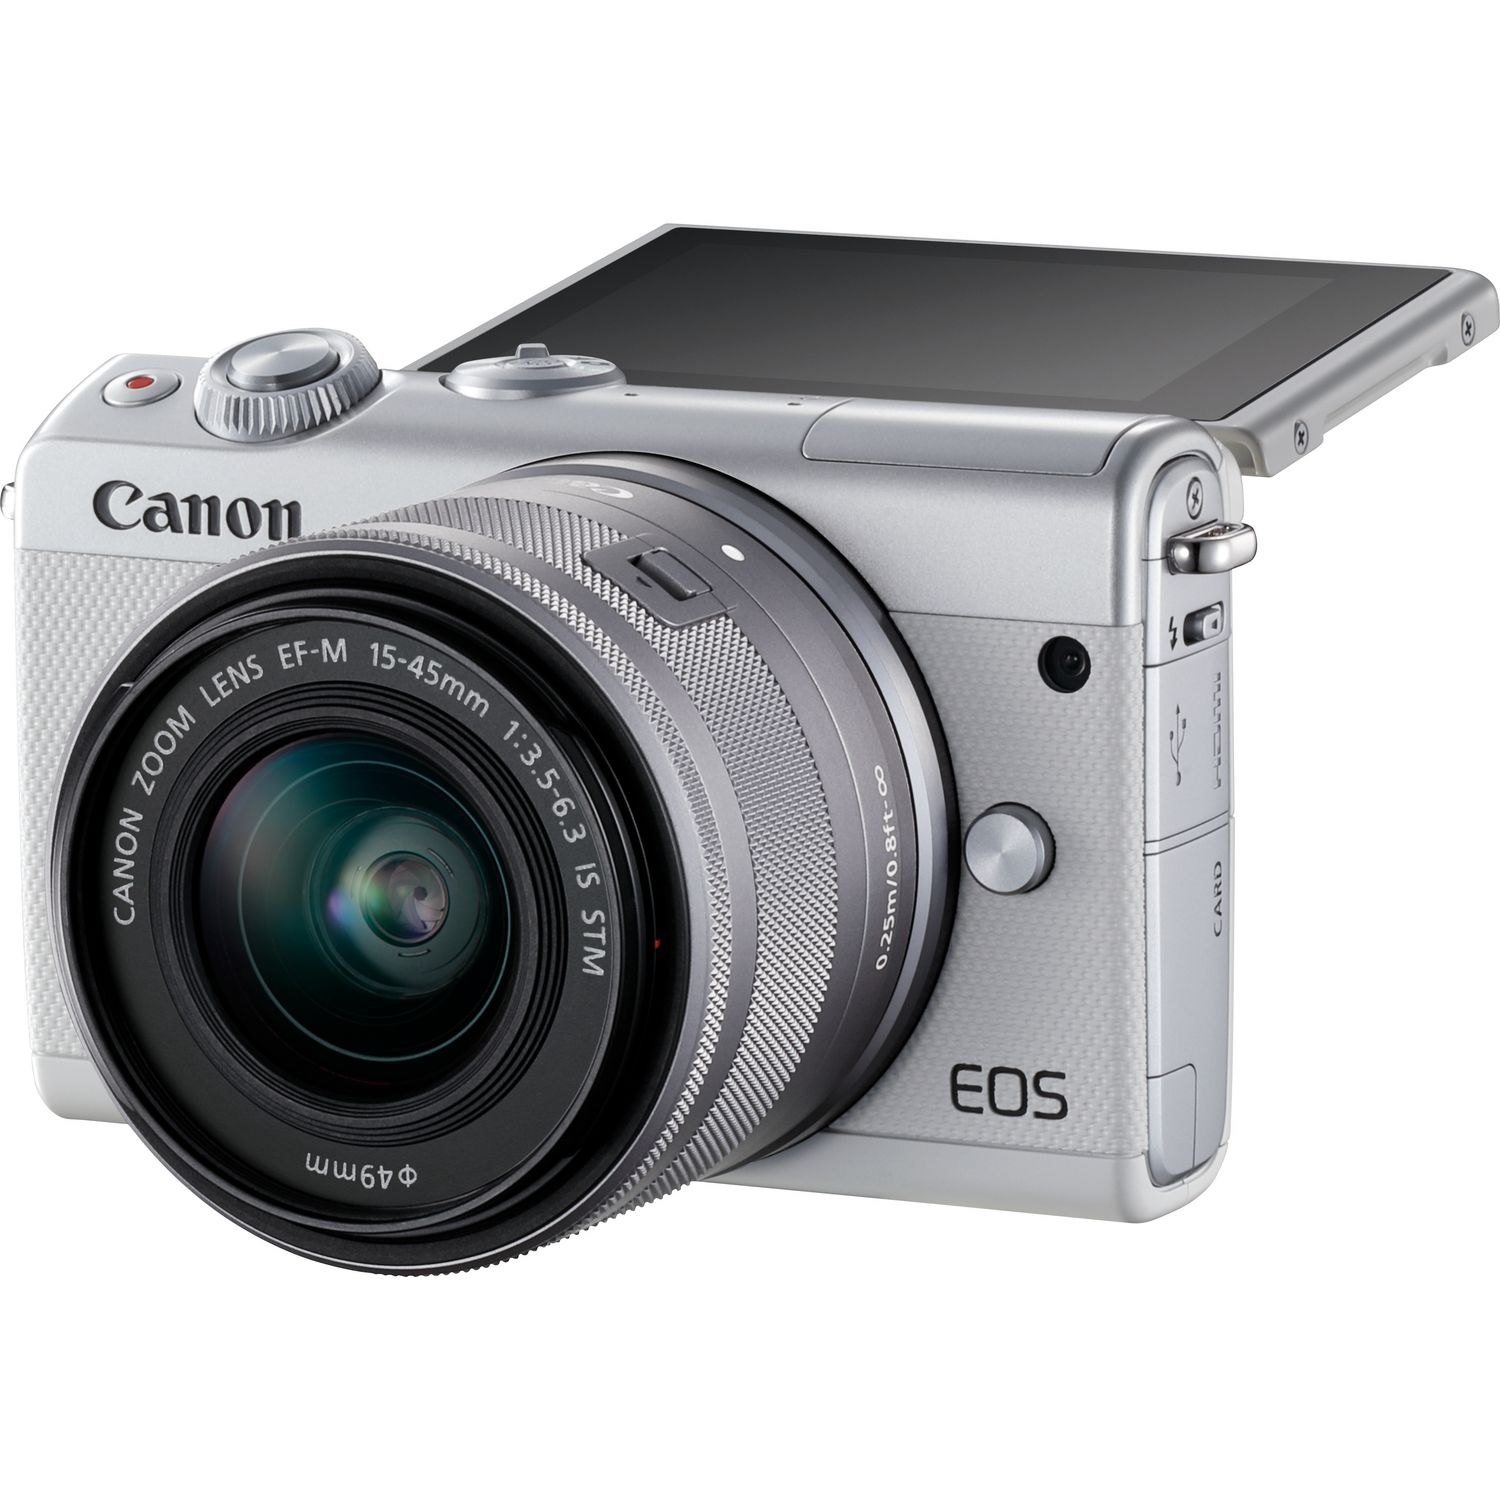 ad937481513cc7 Canon EOS M100 blanc, objectif EF-M 15-45mm f 3.5-6.3 IS STM argent ...